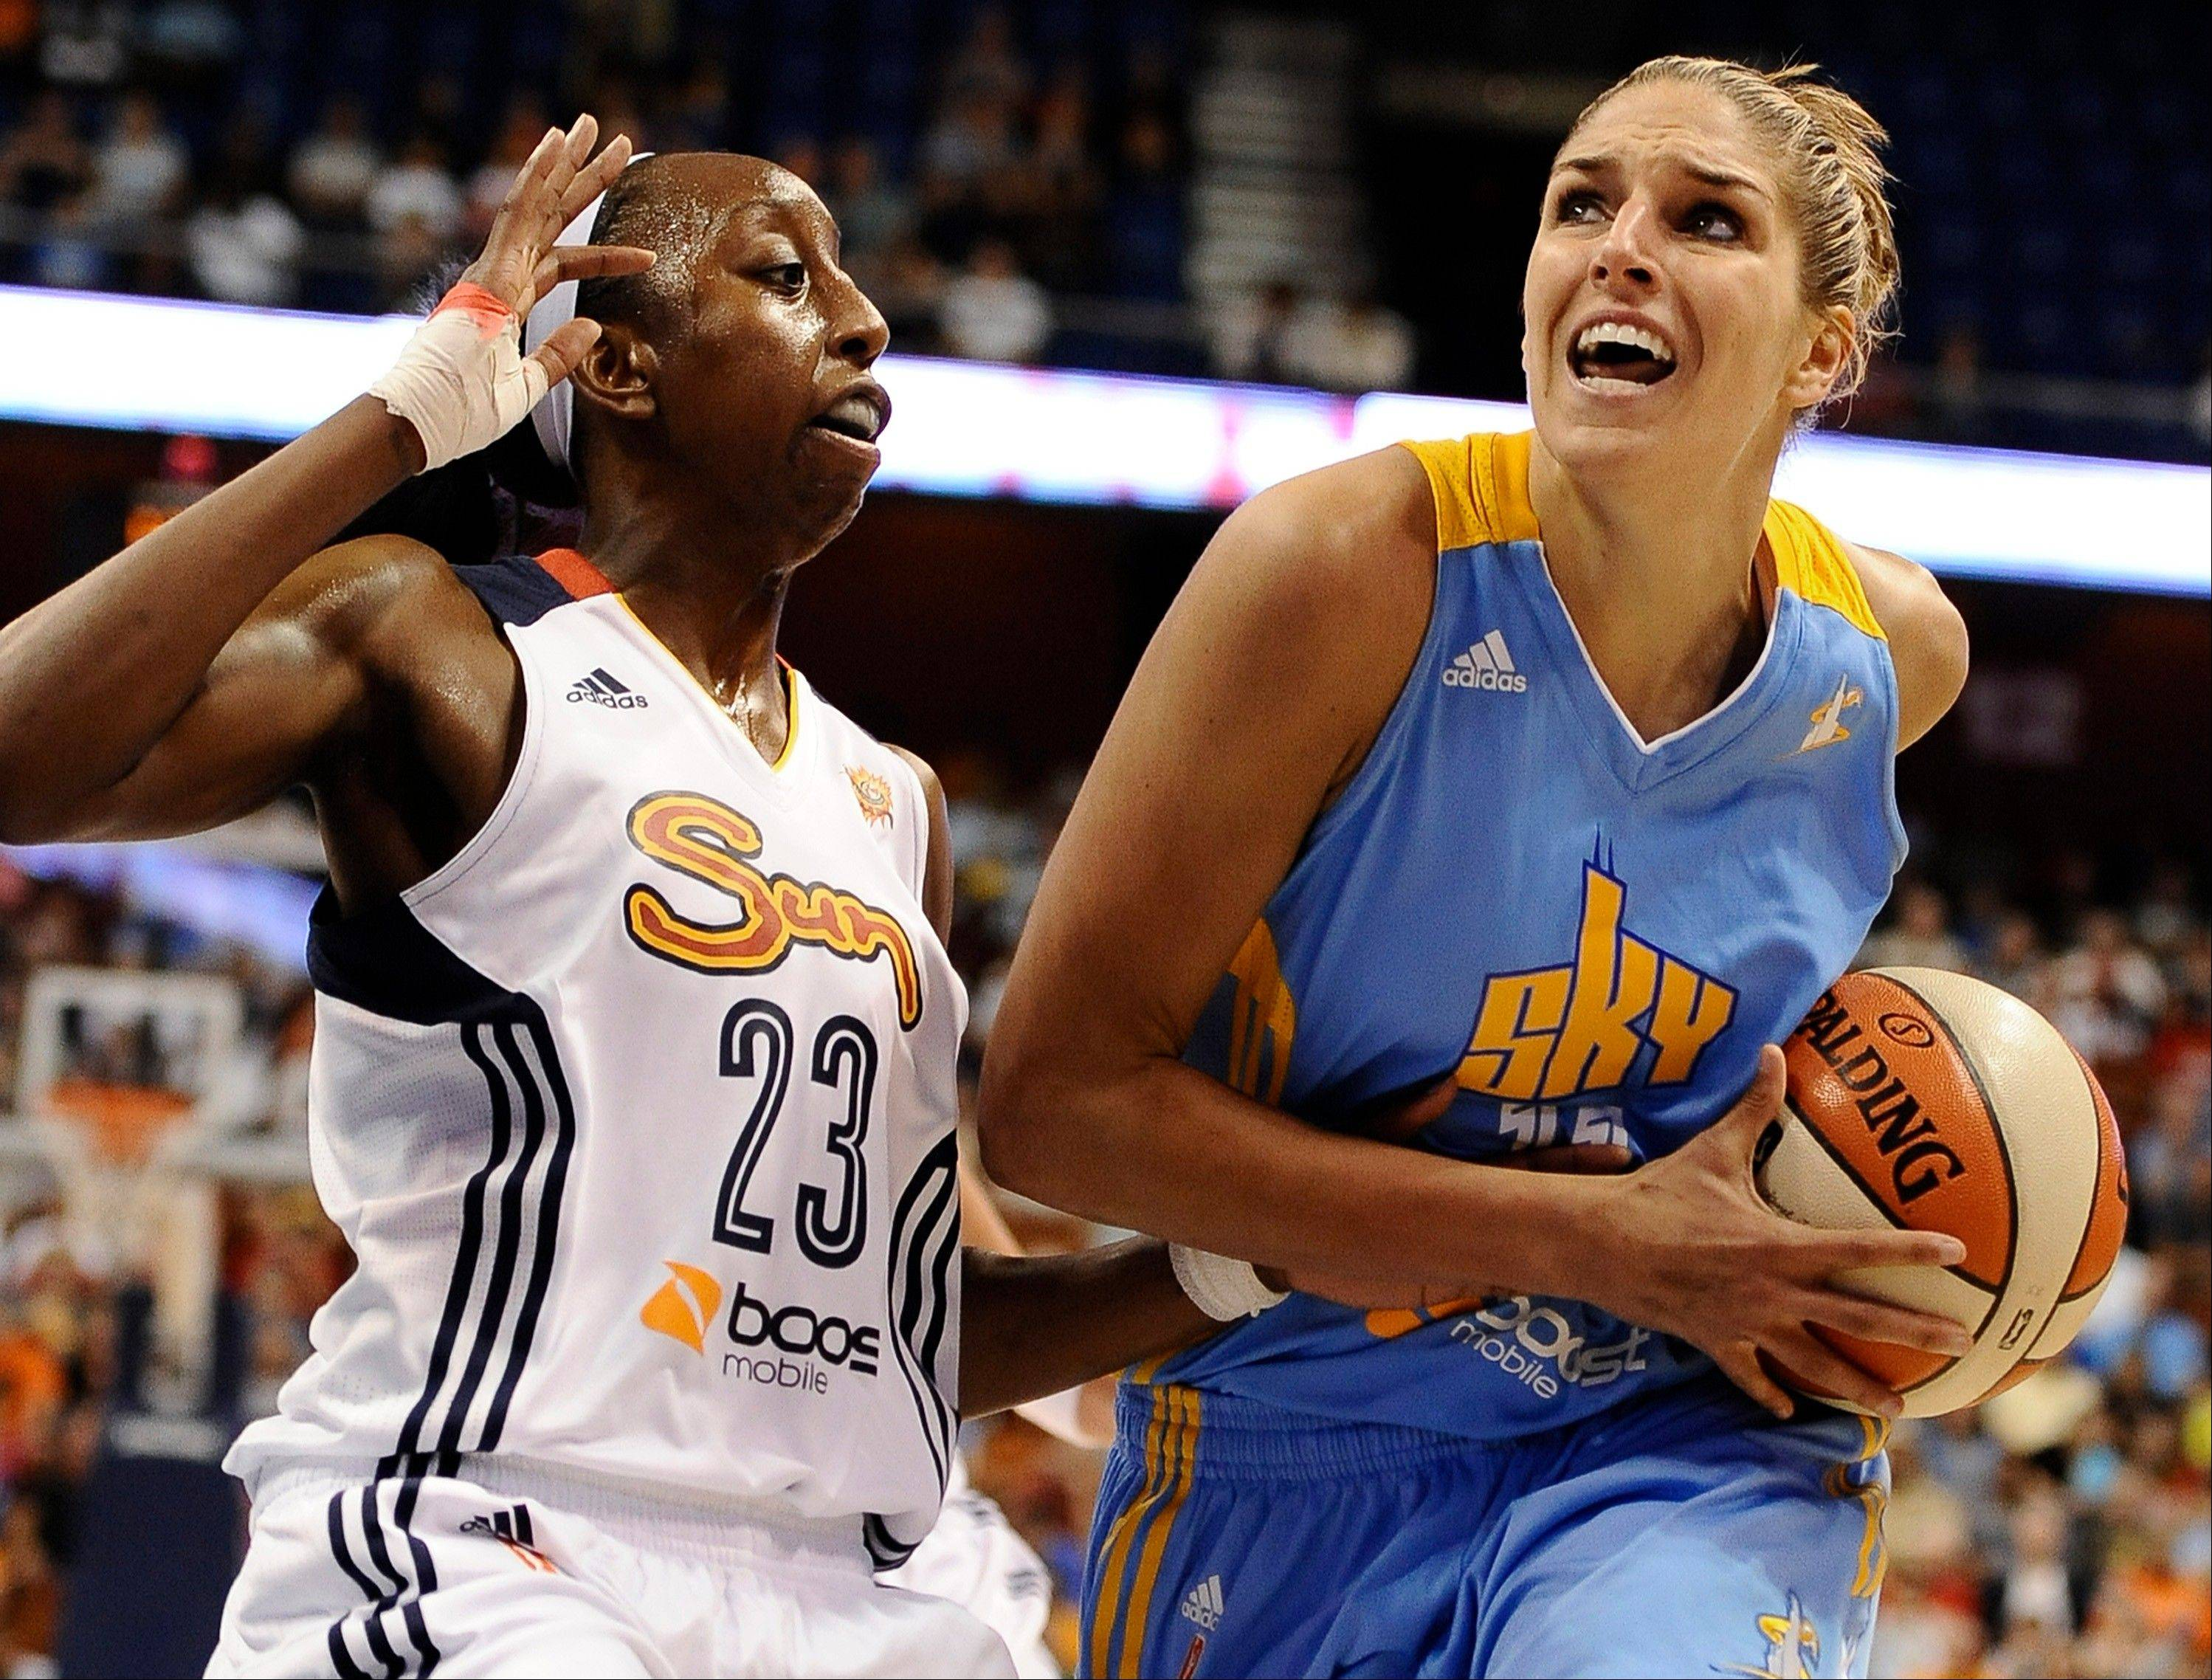 Elena Delle Donne has provided the spark for the Sky all season and fans voted for her more than any other WNBA player during the all-star balloting process.